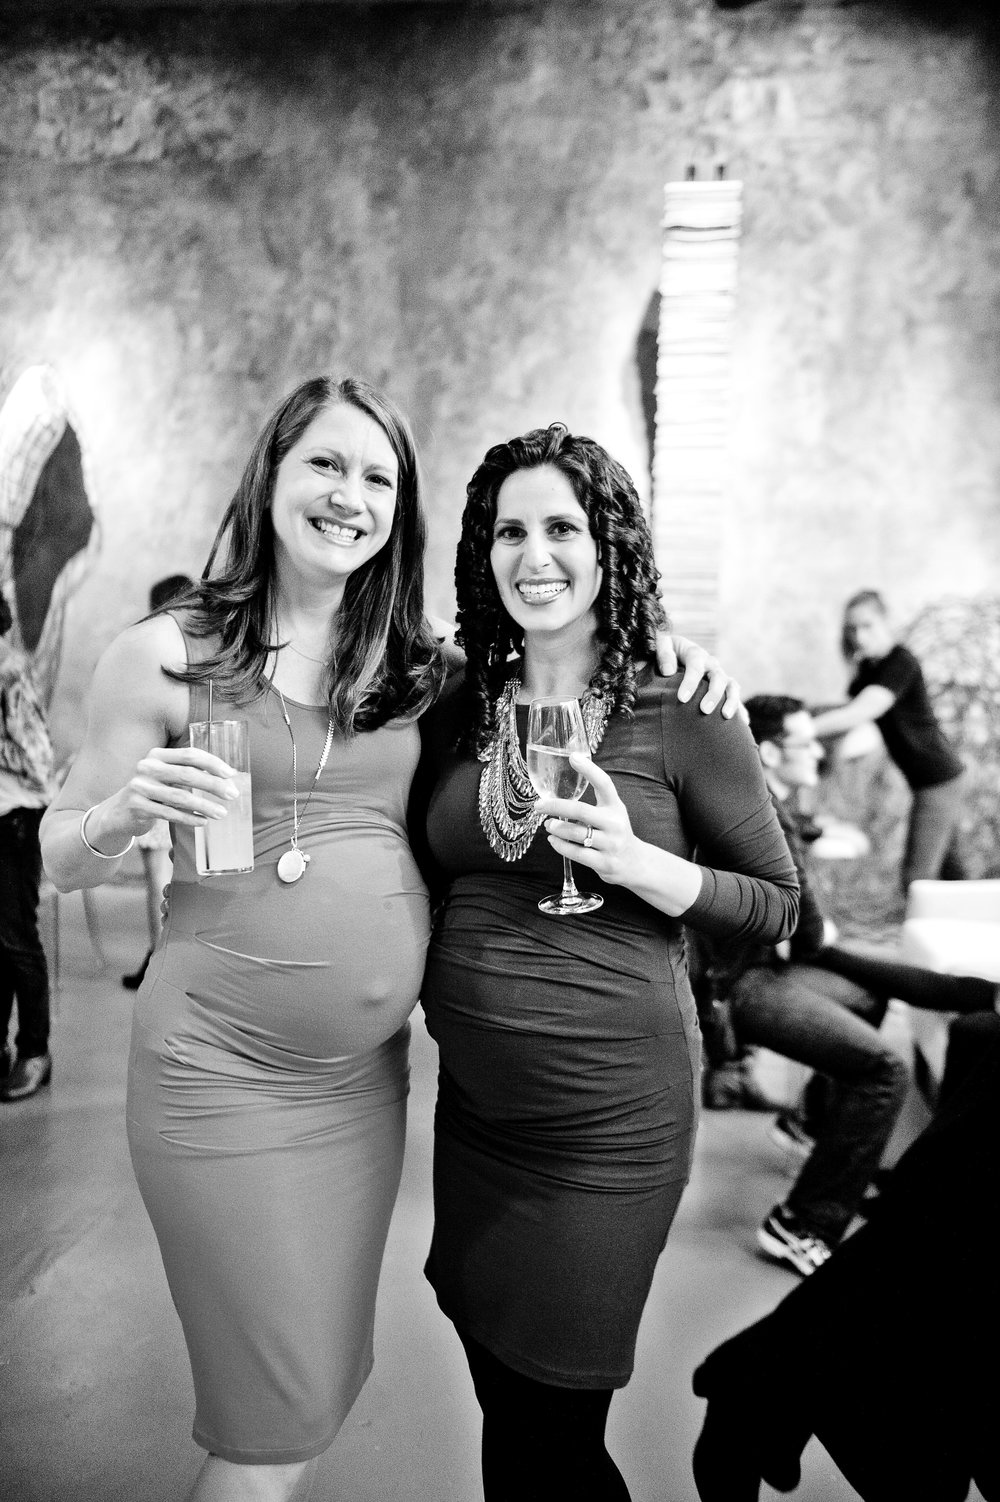 Bridalbliss.com | Portland Baby Shower | Oregon Event Planning and Design | Mosca Studio